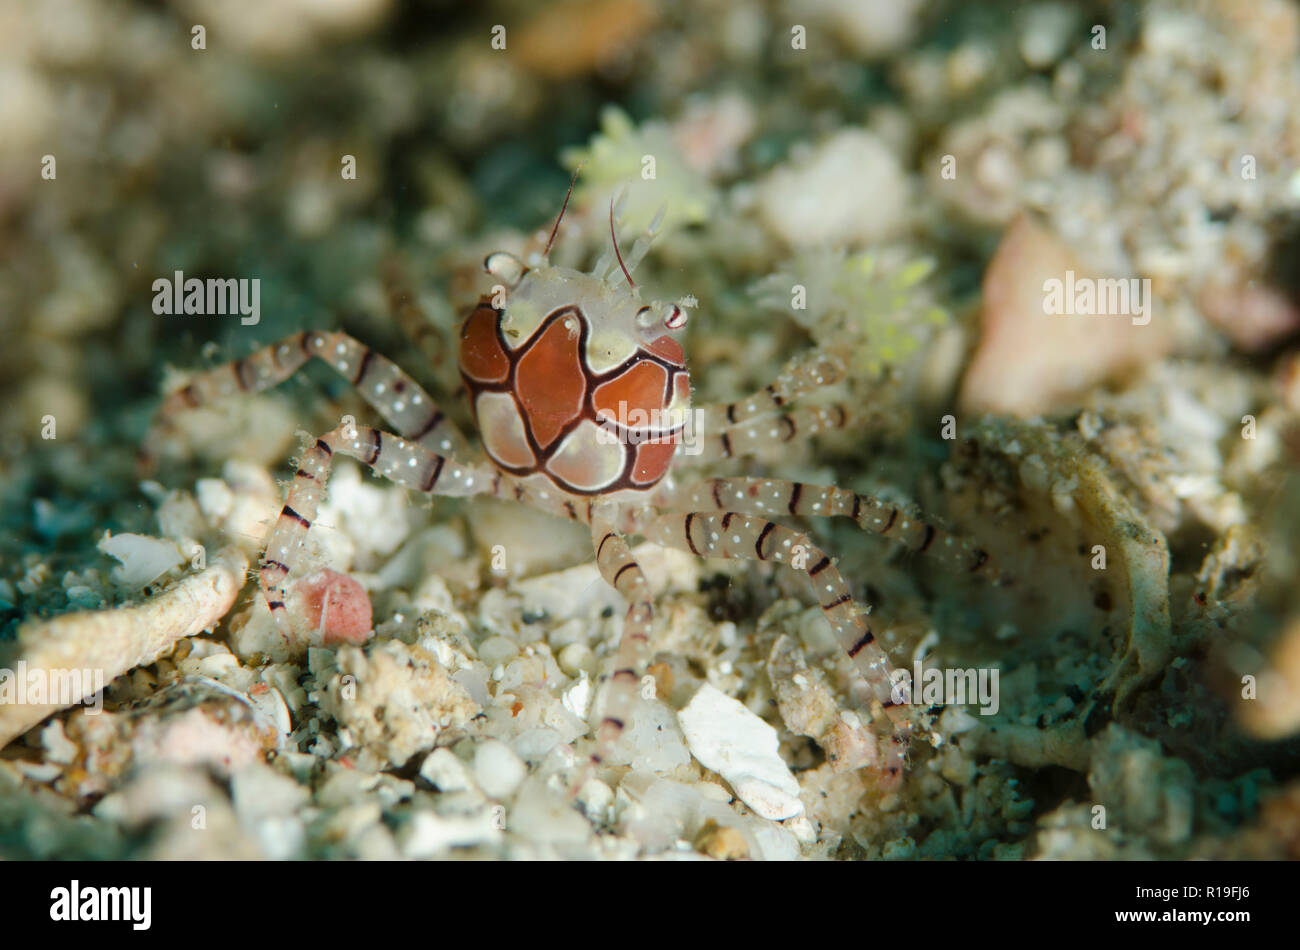 Pom-pom Crab, Lybia tesselata, with anemones on legs for protection, Batu Merah dive site, Lembeh Straits, Sulawesi, Indonesia - Stock Image